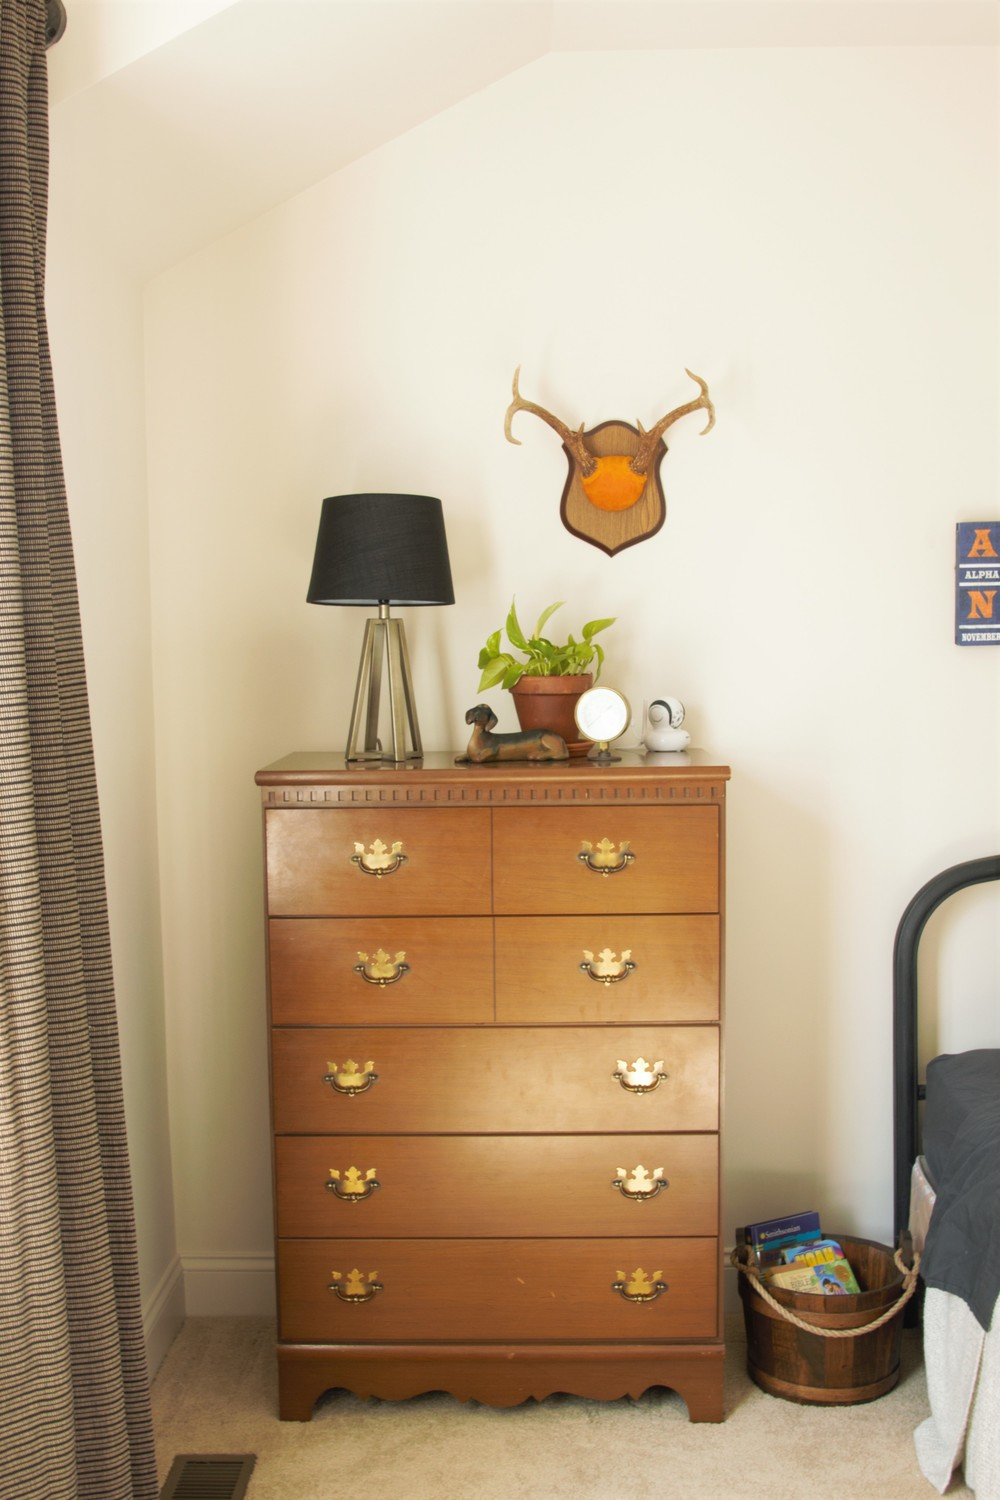 Boy Room Decor. Boy Room. Boy Room Ideas. Boy Room Themes. Toddler Room.